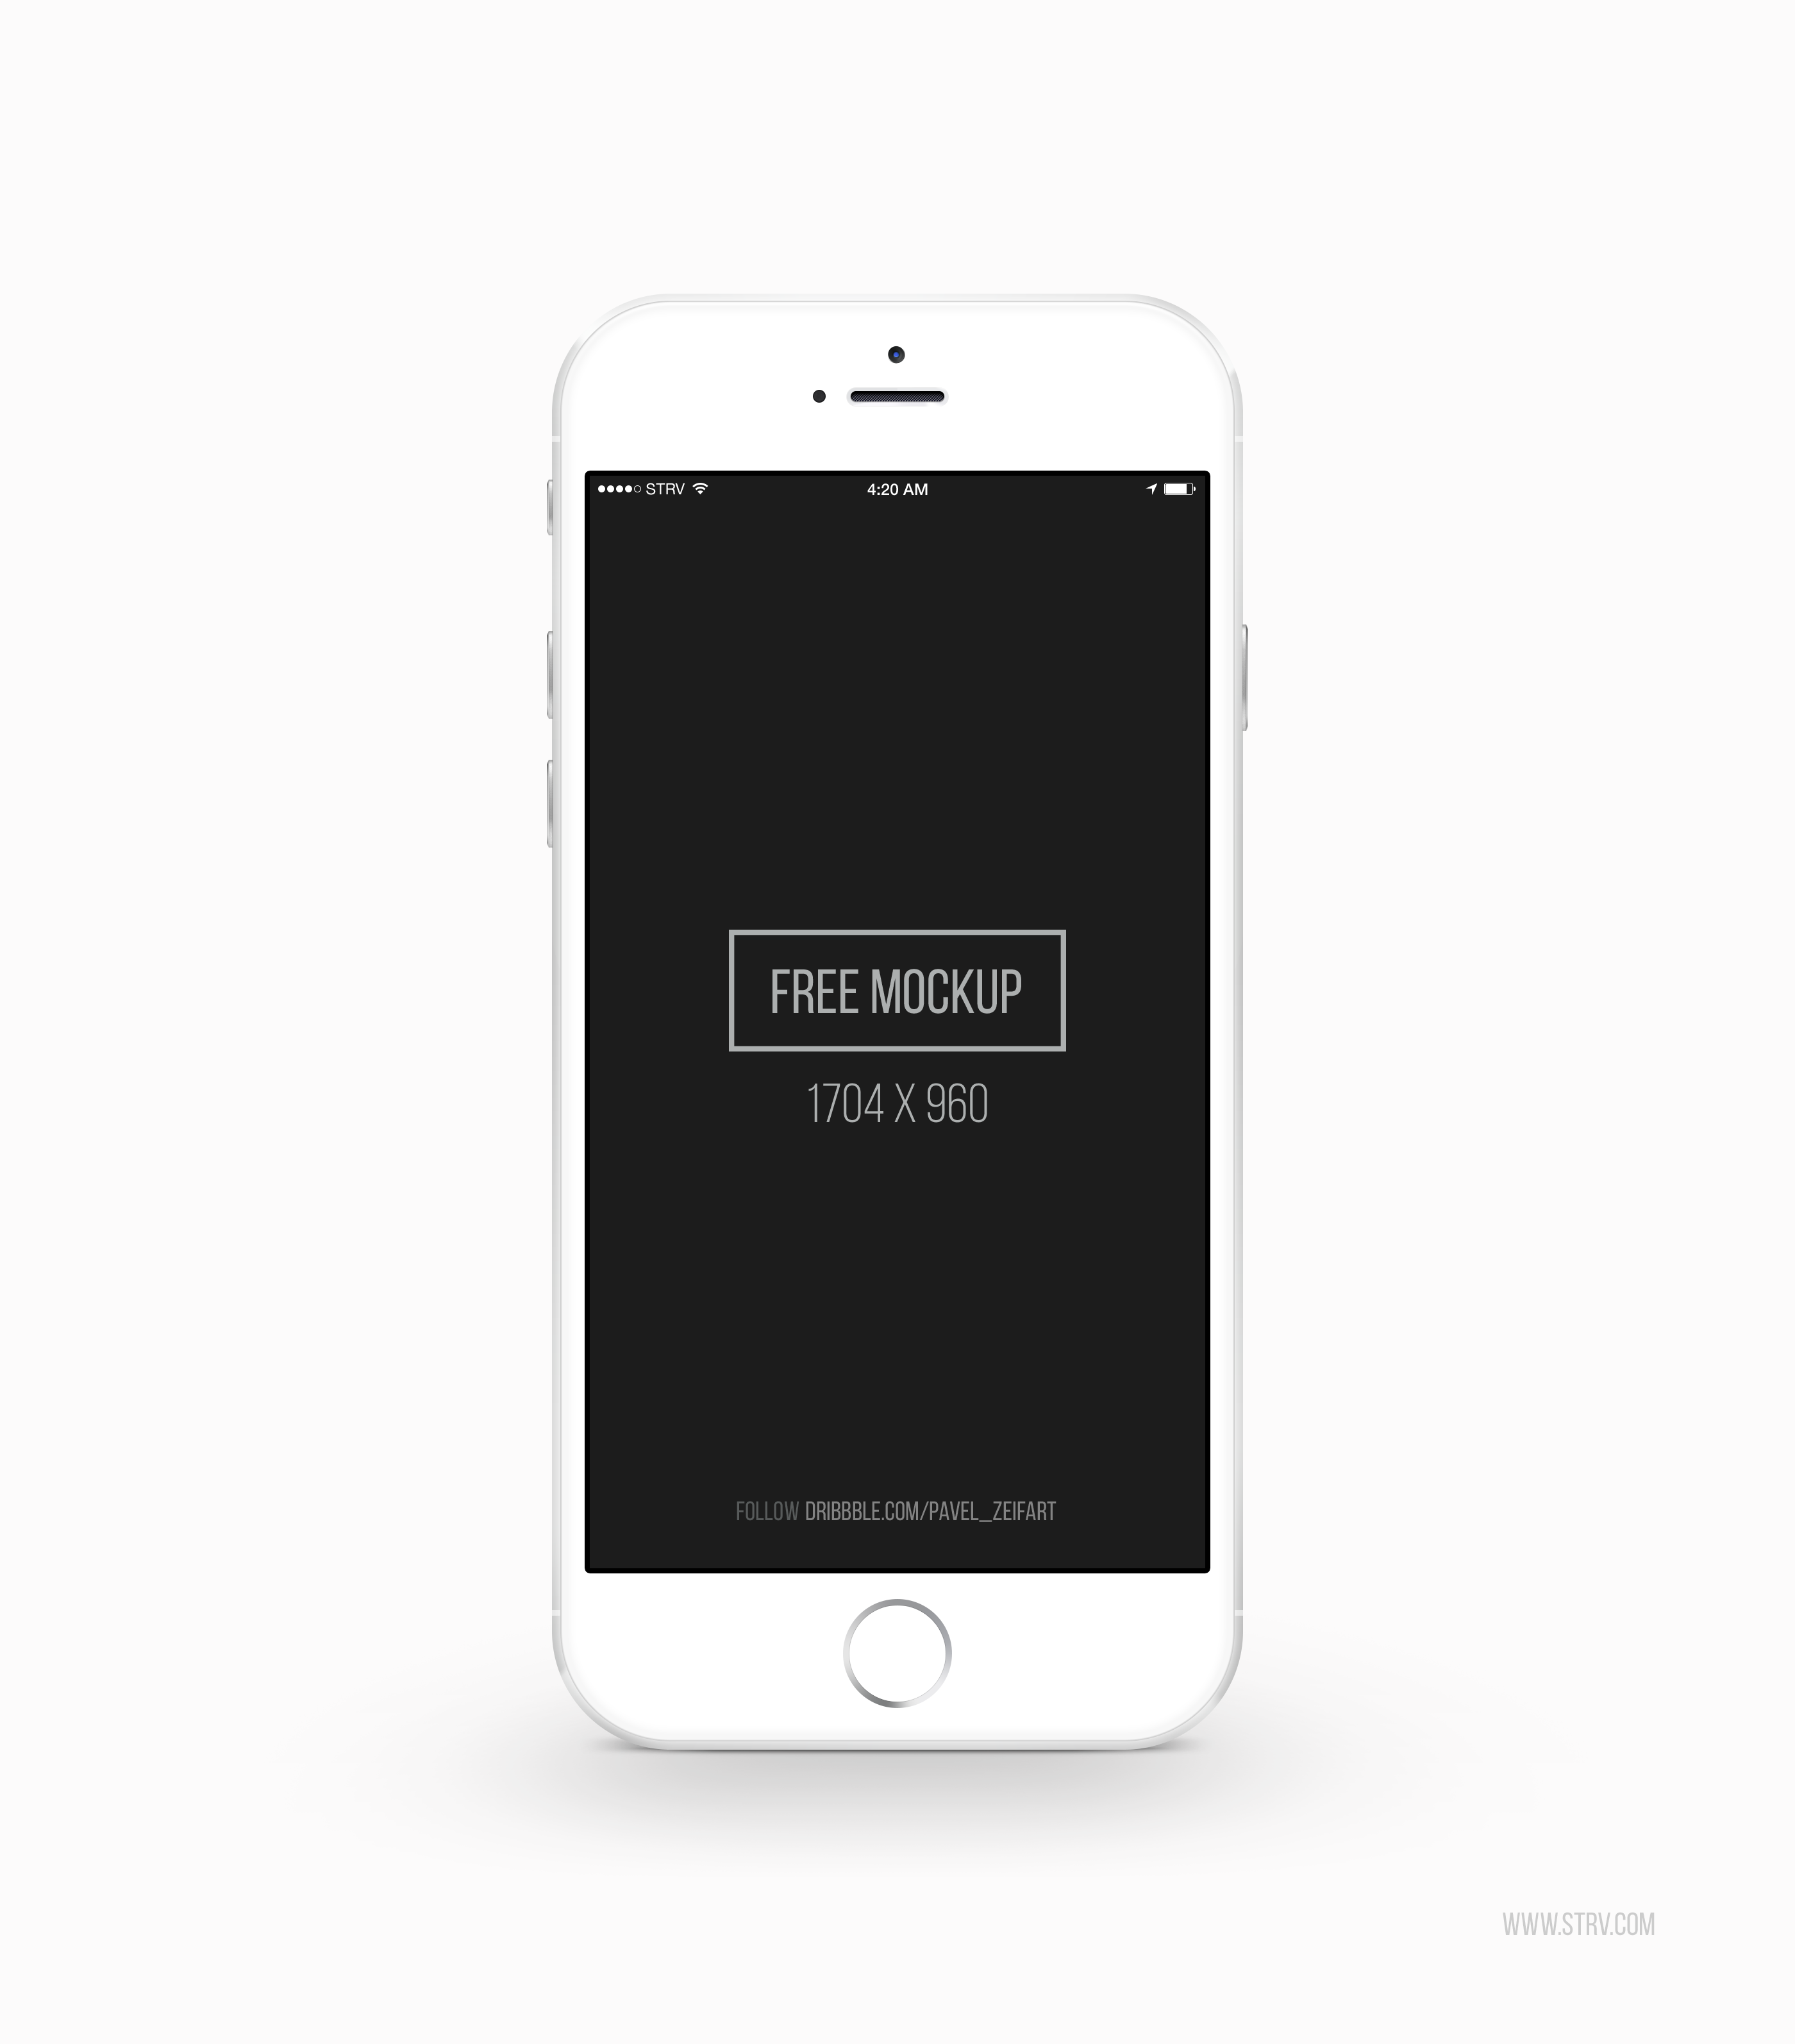 Download White Iphone 6 Psd Mockup Template Free Psd Vector Icons Iphone Mockup Free Iphone Mockup Template Free